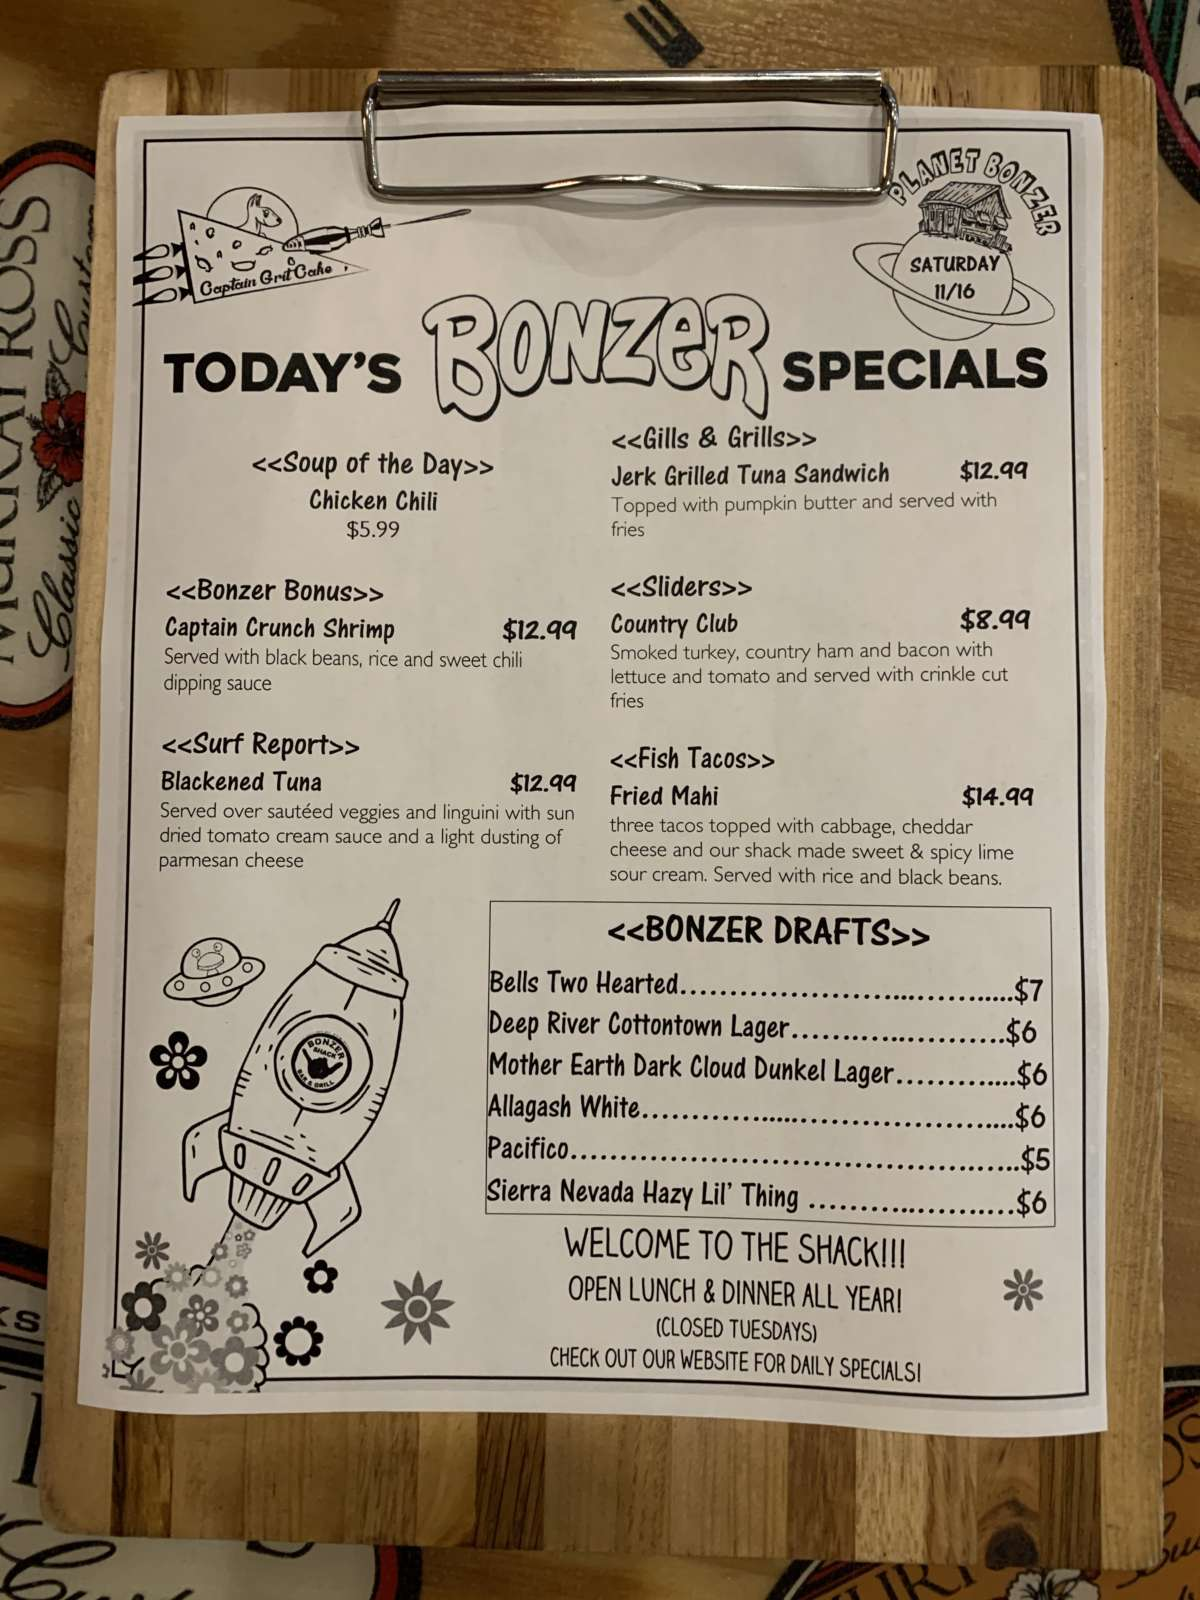 LUNCH SPECIALS 11/16